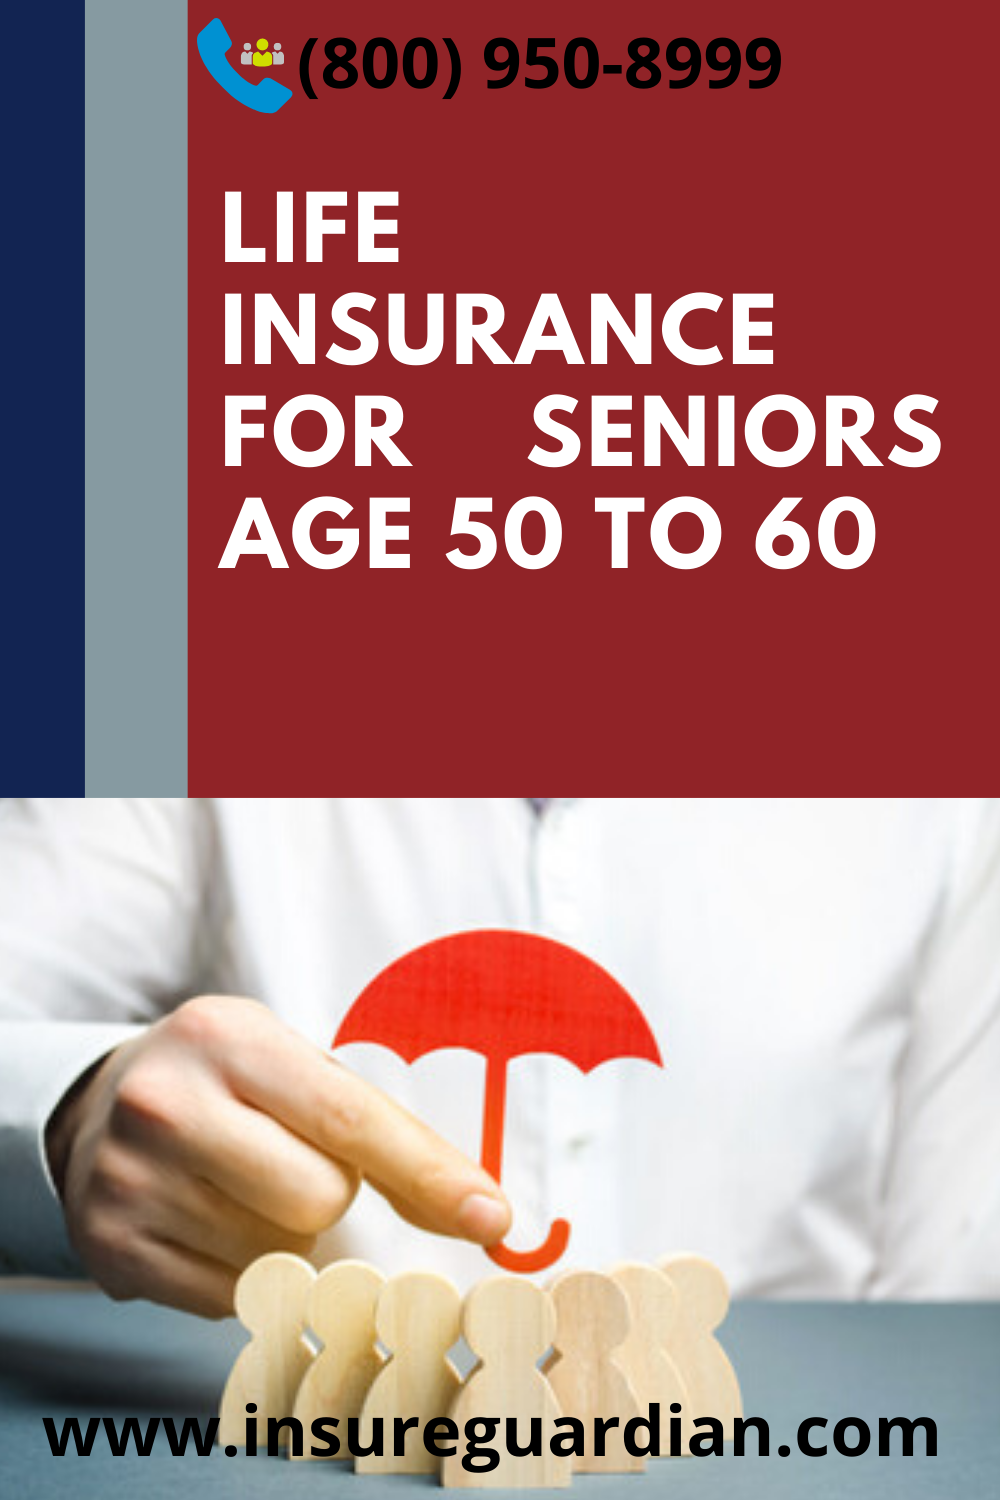 Life Insurance for Seniors age 50 to 60 in 2020 Life